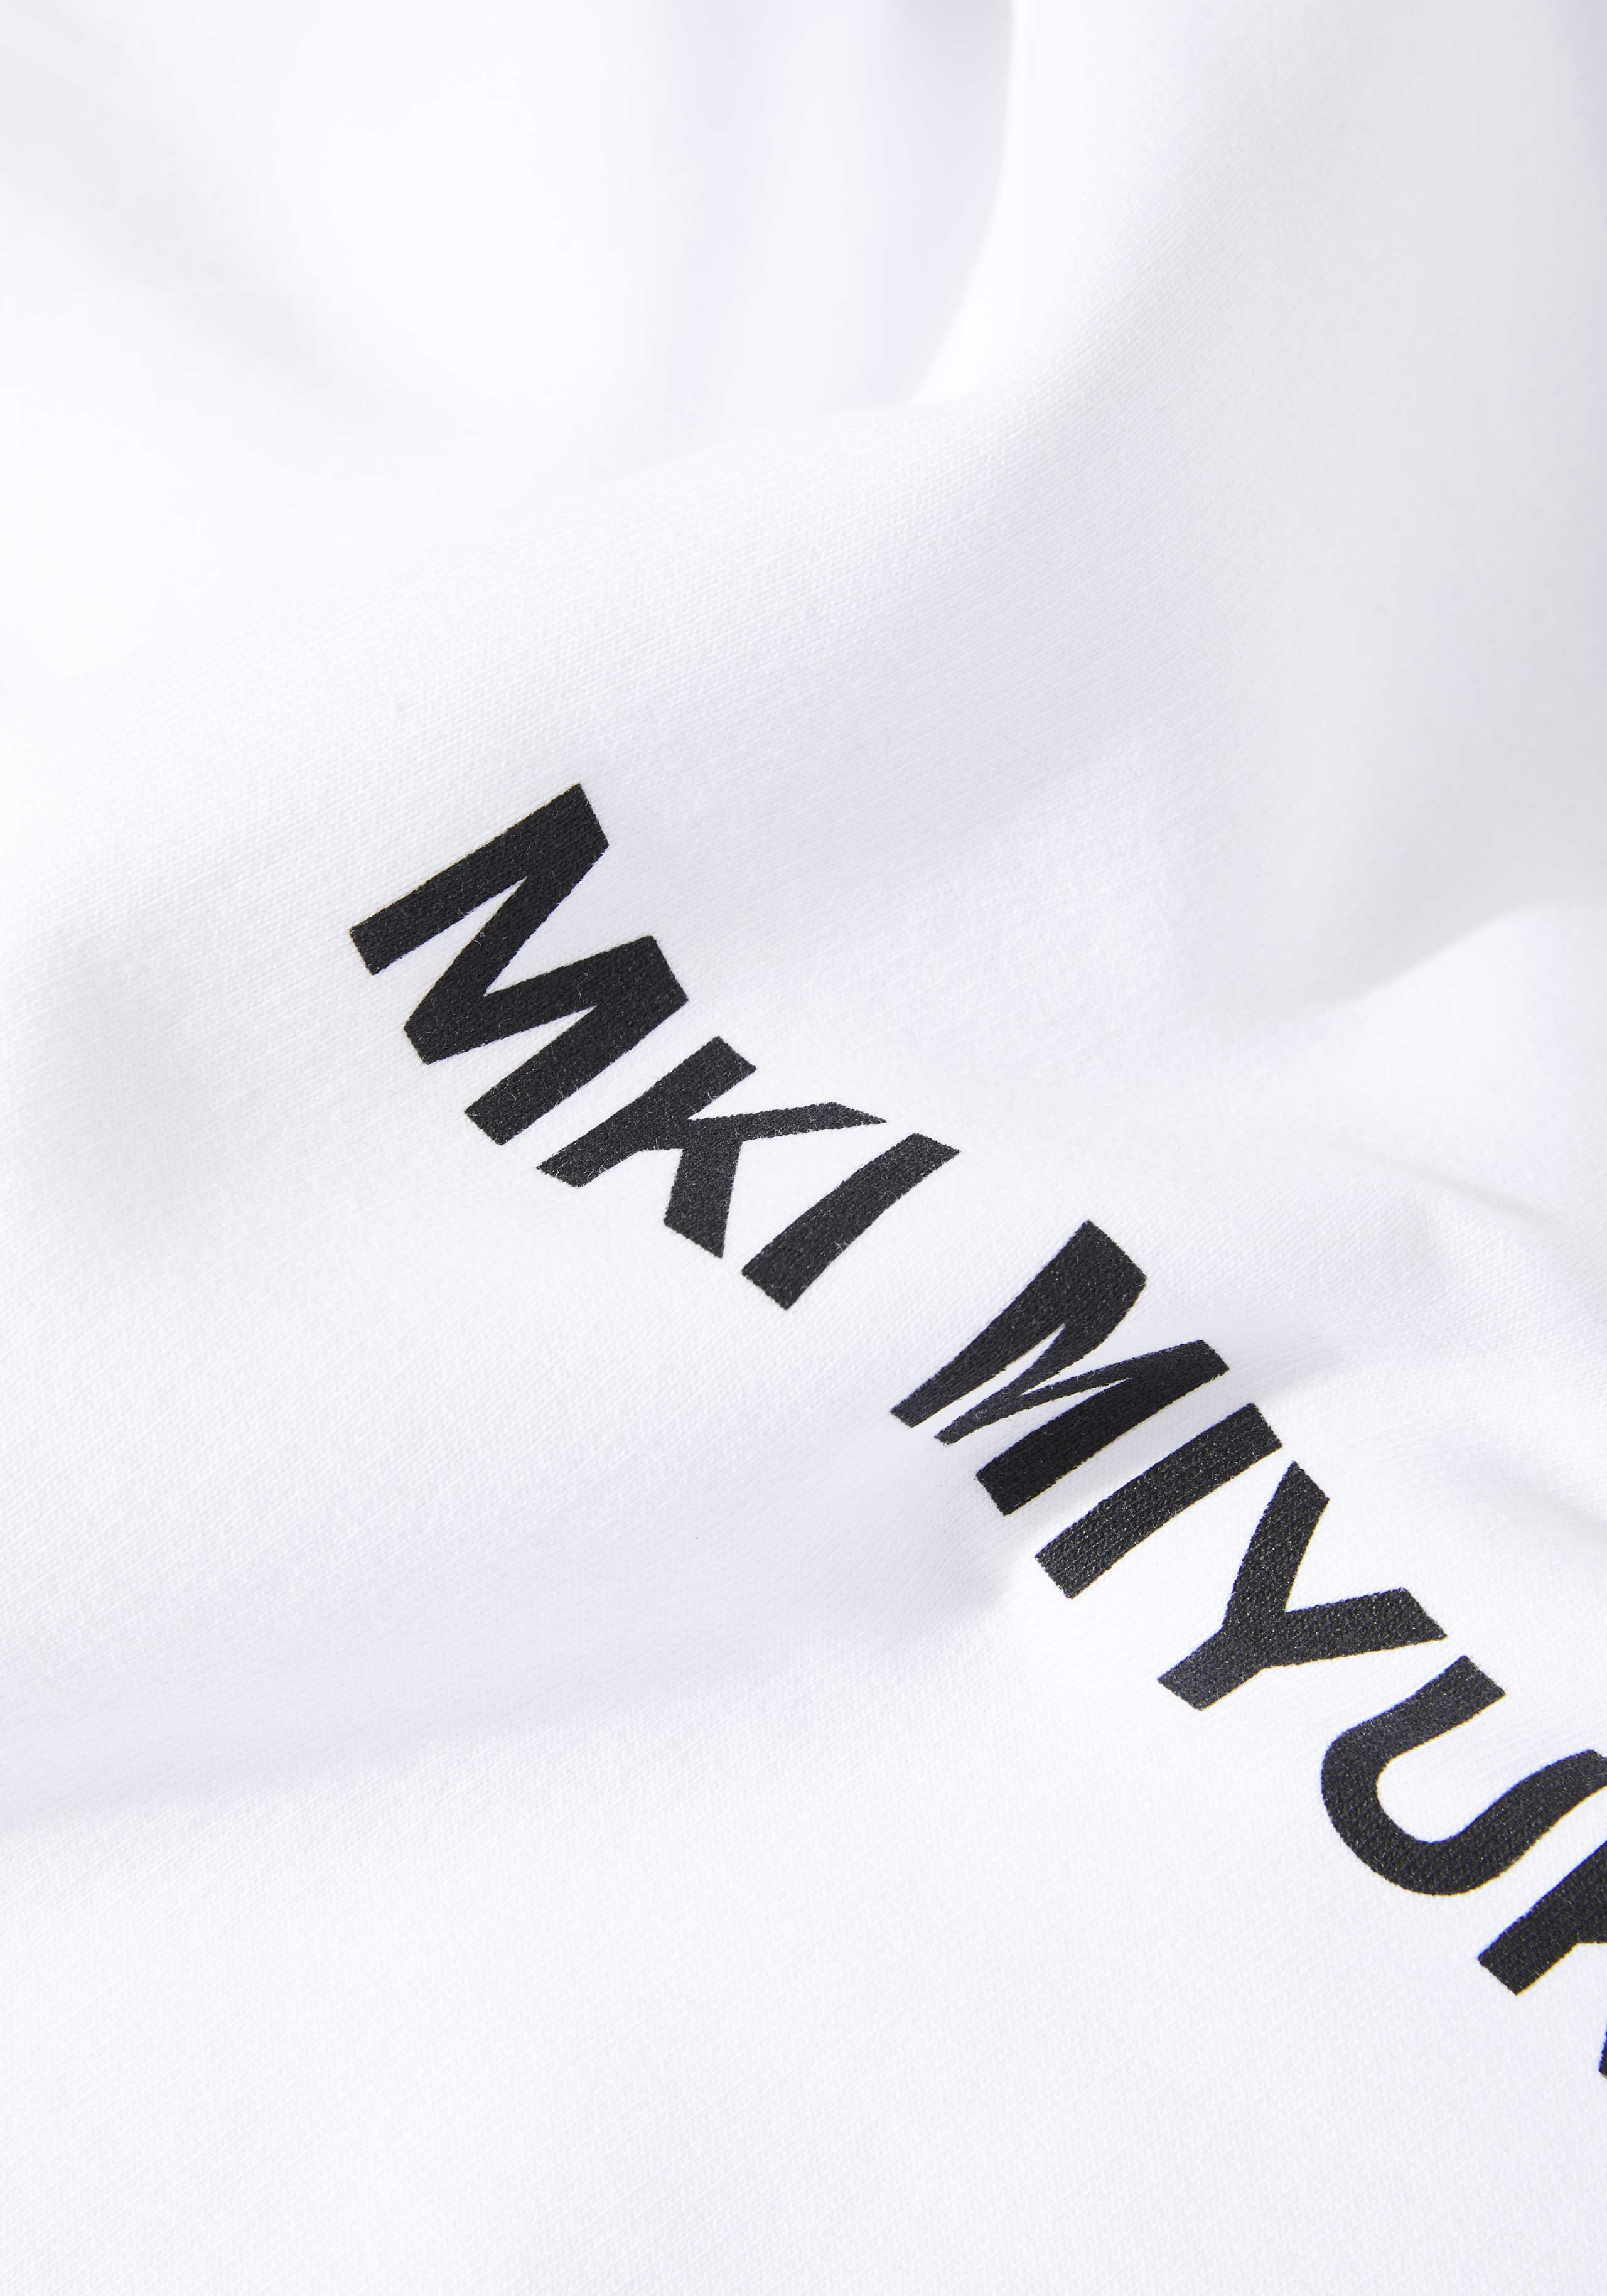 mki registered logo tee 5